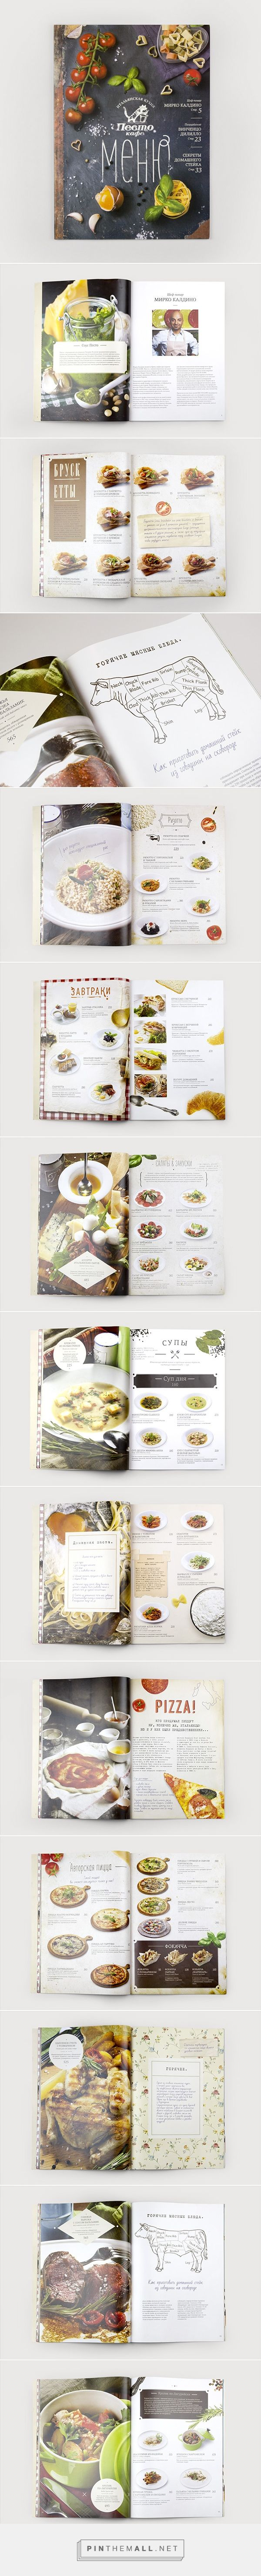 Pesto Cafe Menu by Anya Aleksandrova